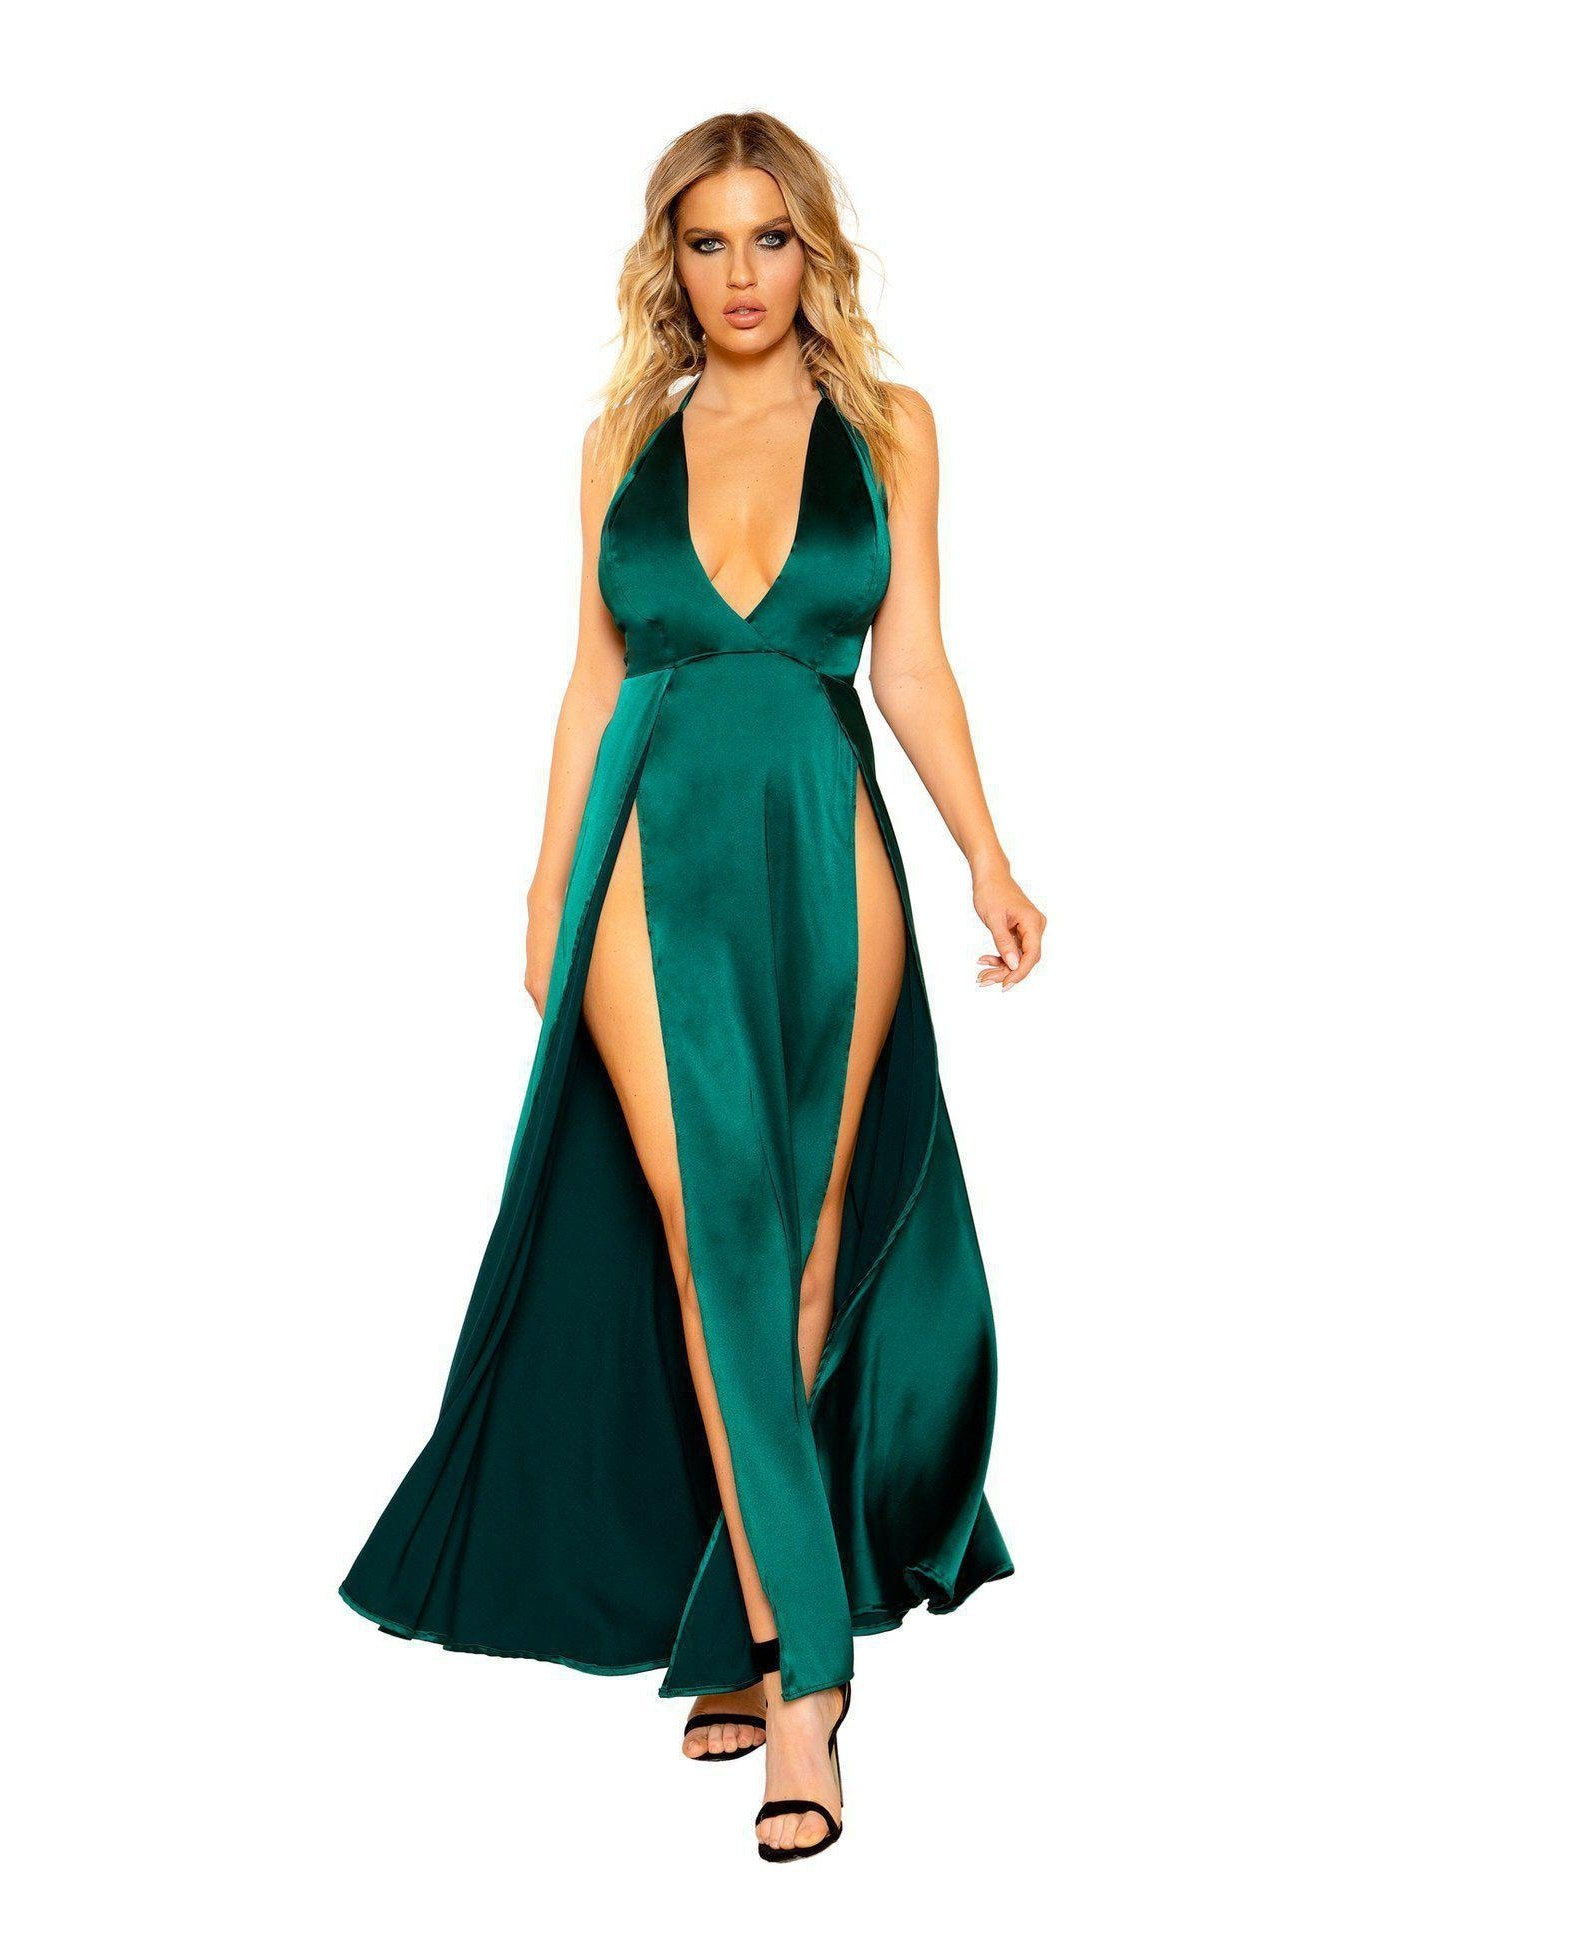 Maxi Length Satin Dress with High Slits and Deep Cut club wear Size SmallColor Emerald GreenNakees